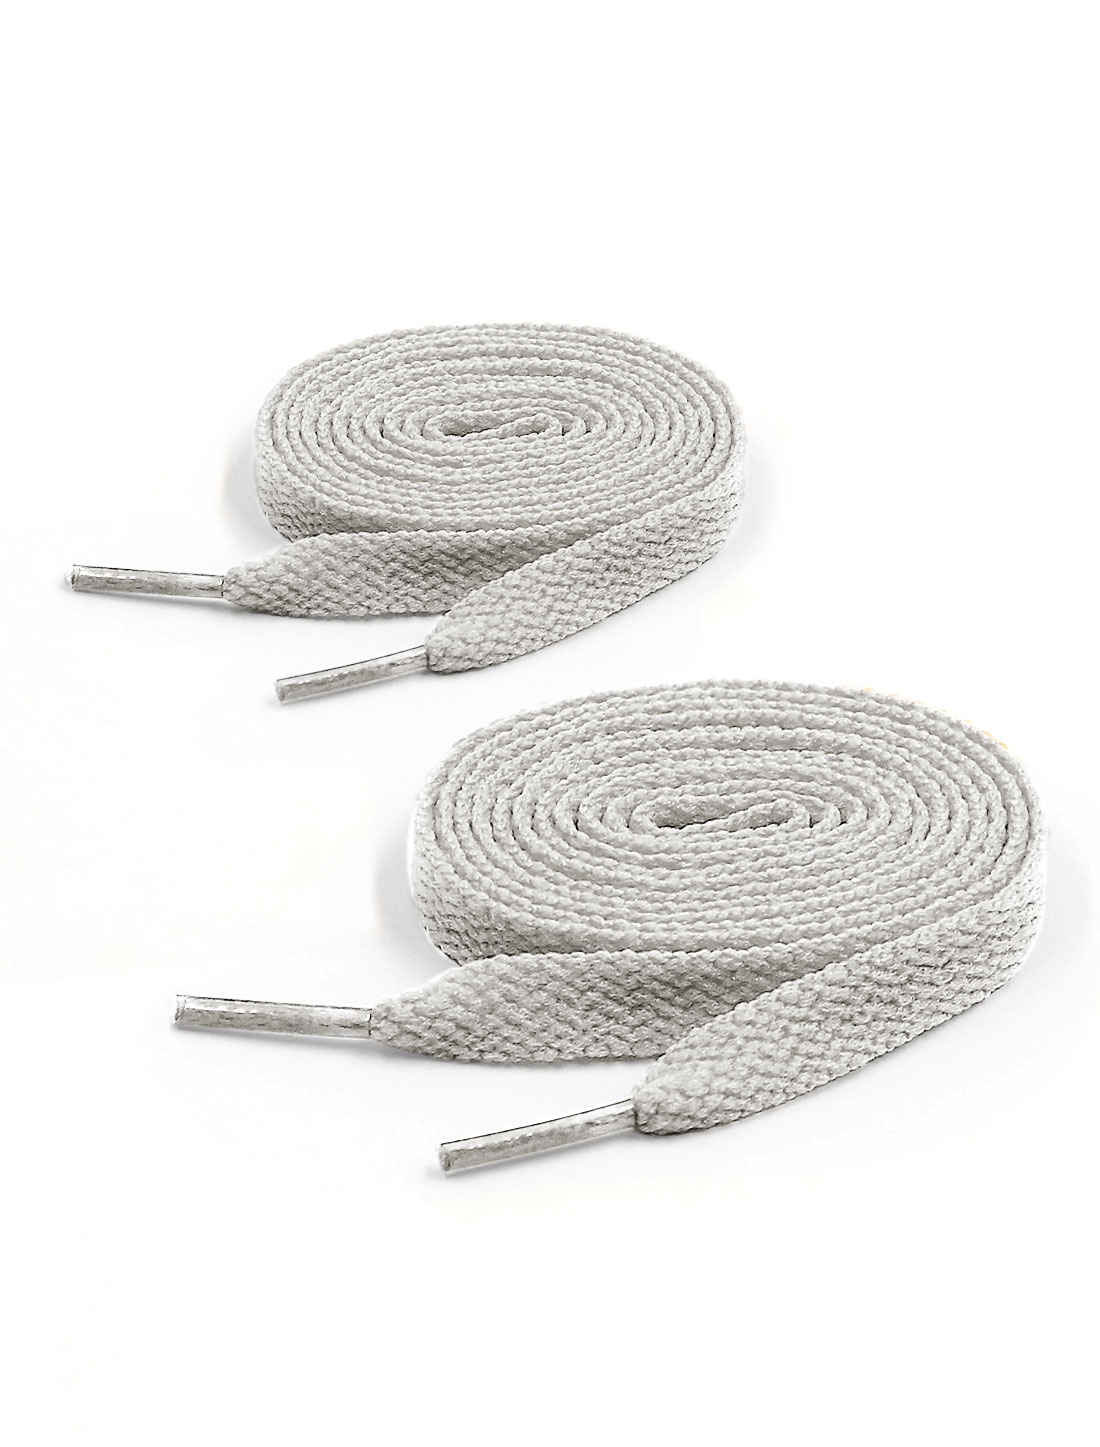 Unisex 123cm Length 2 Pairs Flat Running Shoe Laces Sports Shoestring Gray